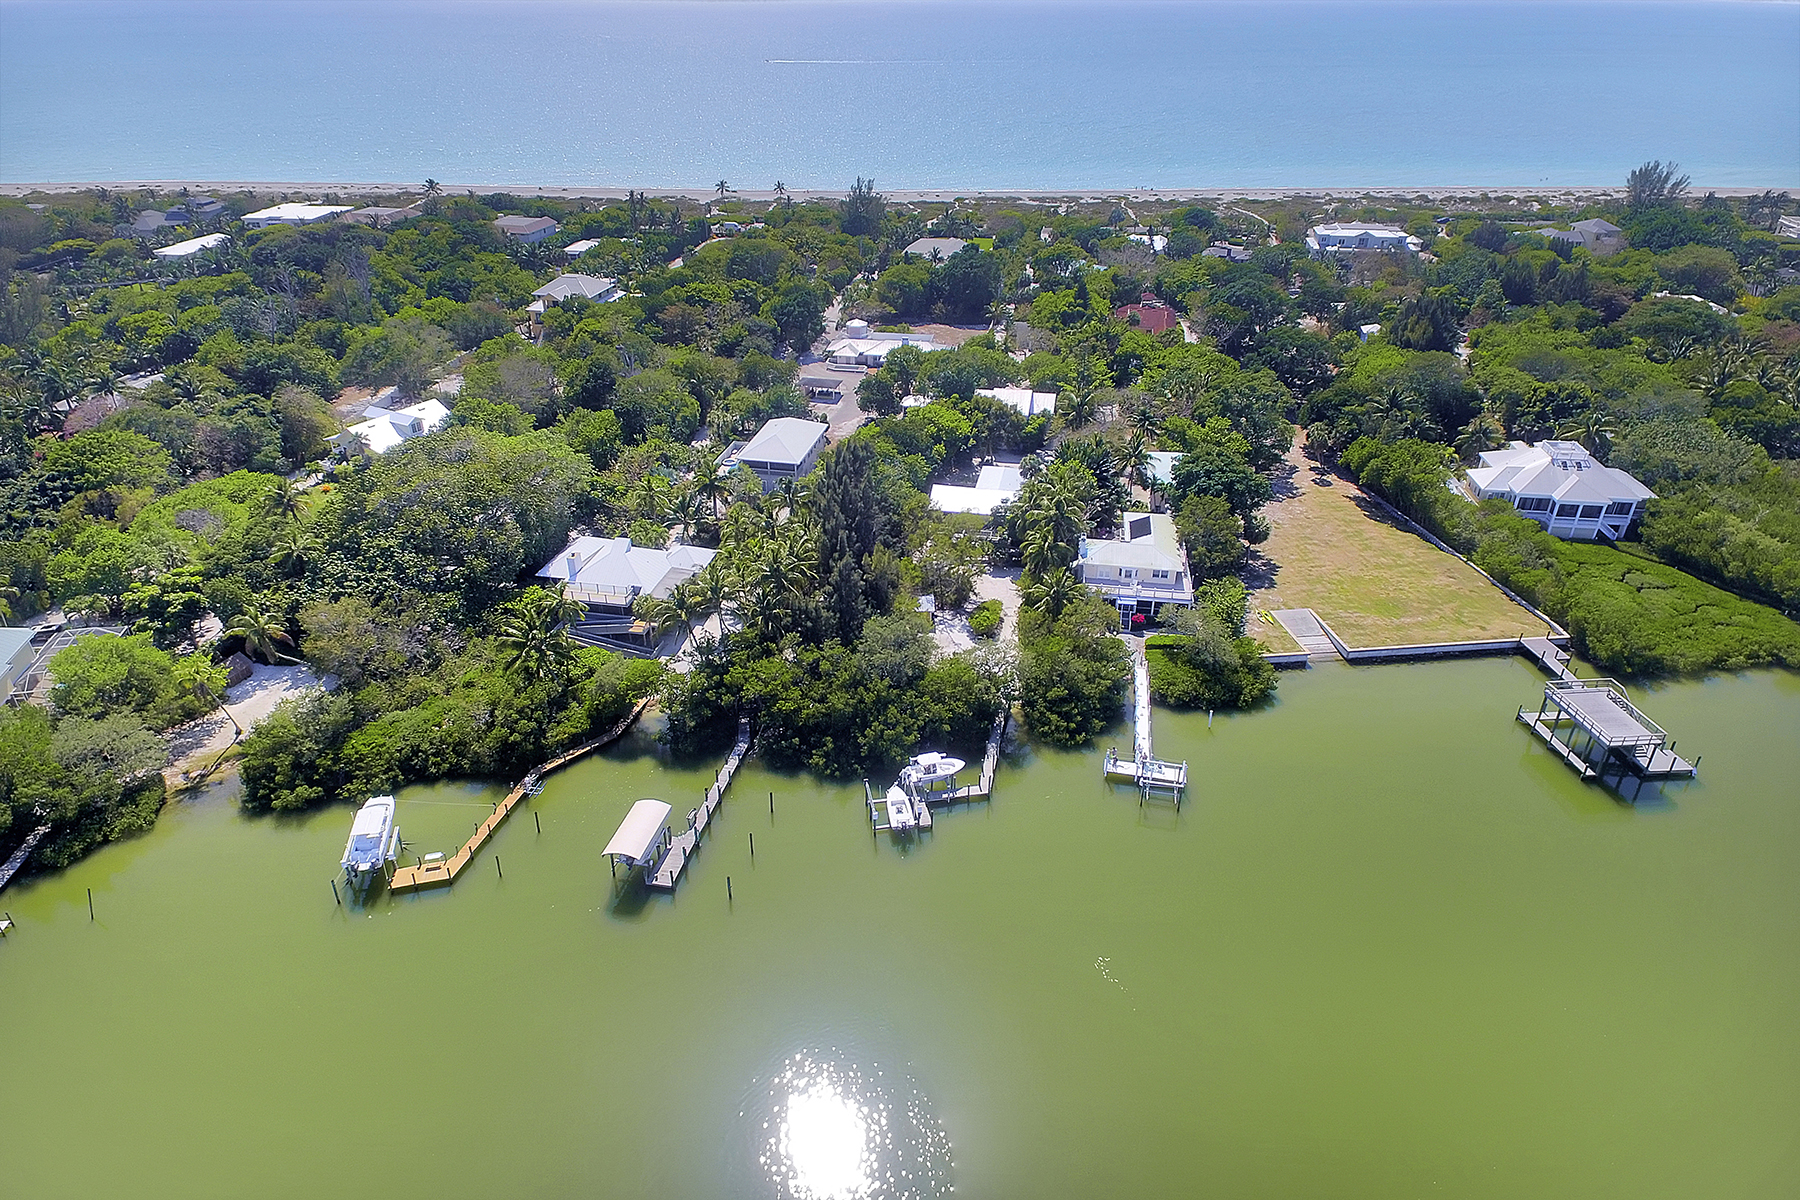 Single Family Home for Sale at 16181 Captiva Drive, Captiva, FL 33924 16181 Captiva Dr, Captiva, Florida 33924 United States